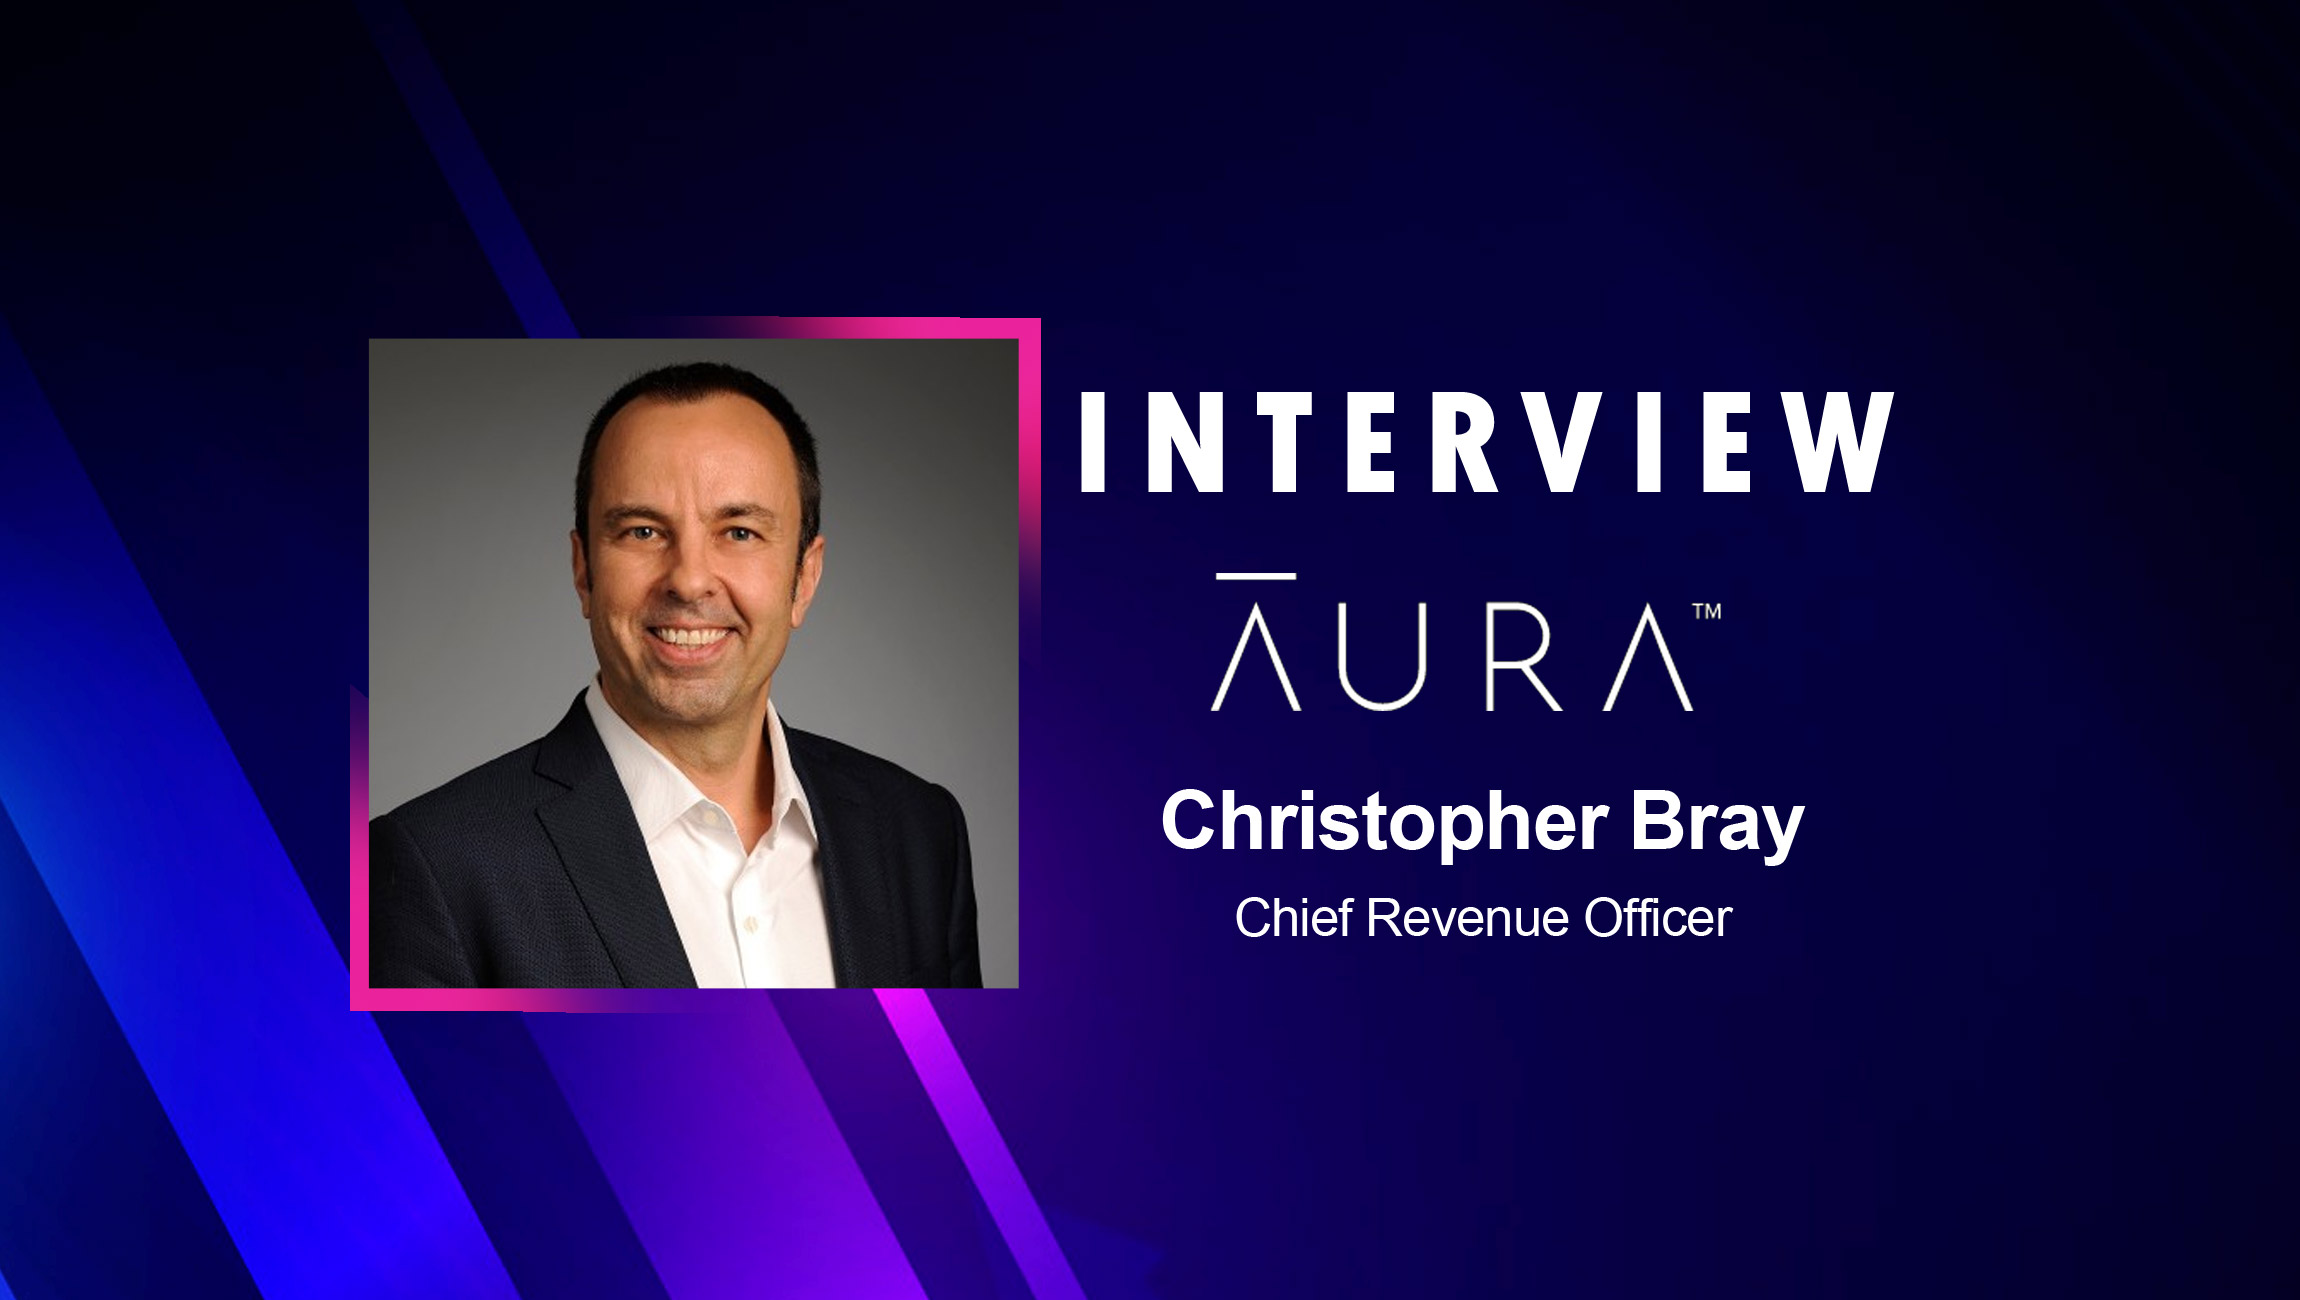 SalesTechStar Interview with Christopher Bray, Chief Revenue Officer at Aura